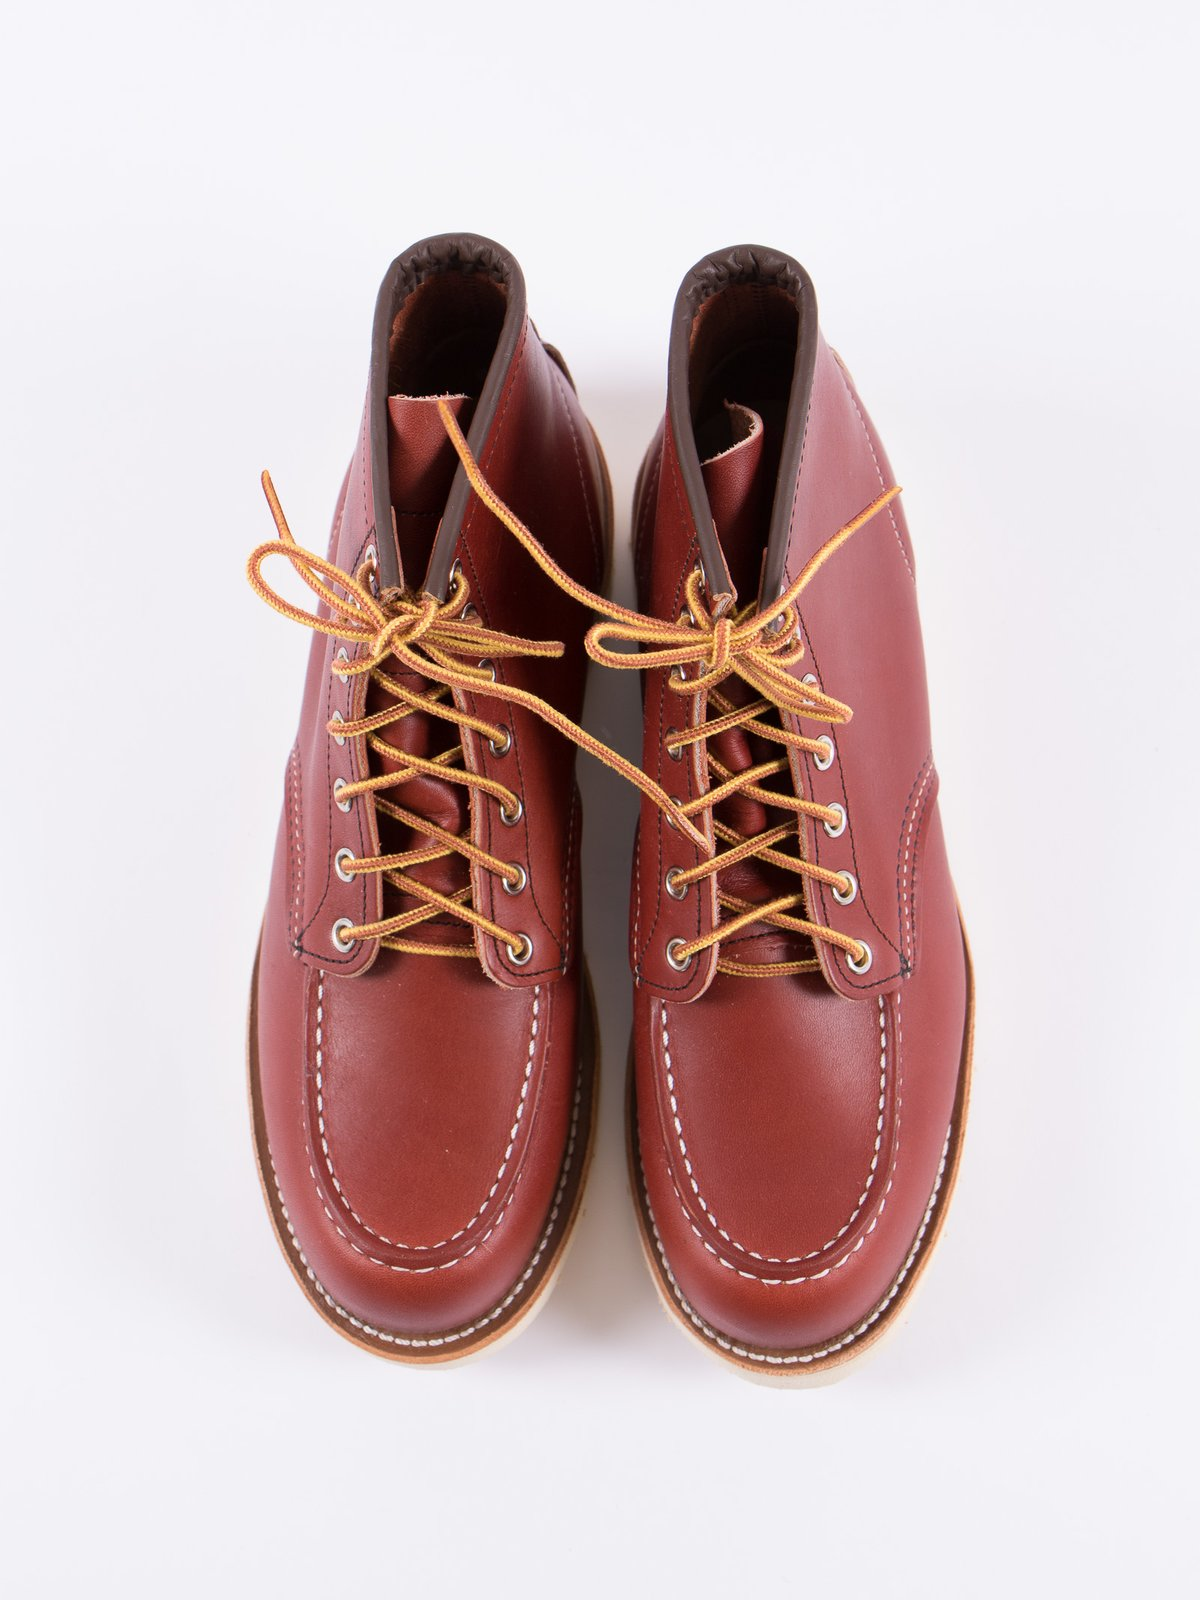 "ORO RUSSET PORTAGE 8131 HERITAGE 6"" MOC TOE BOOT - Image 5"